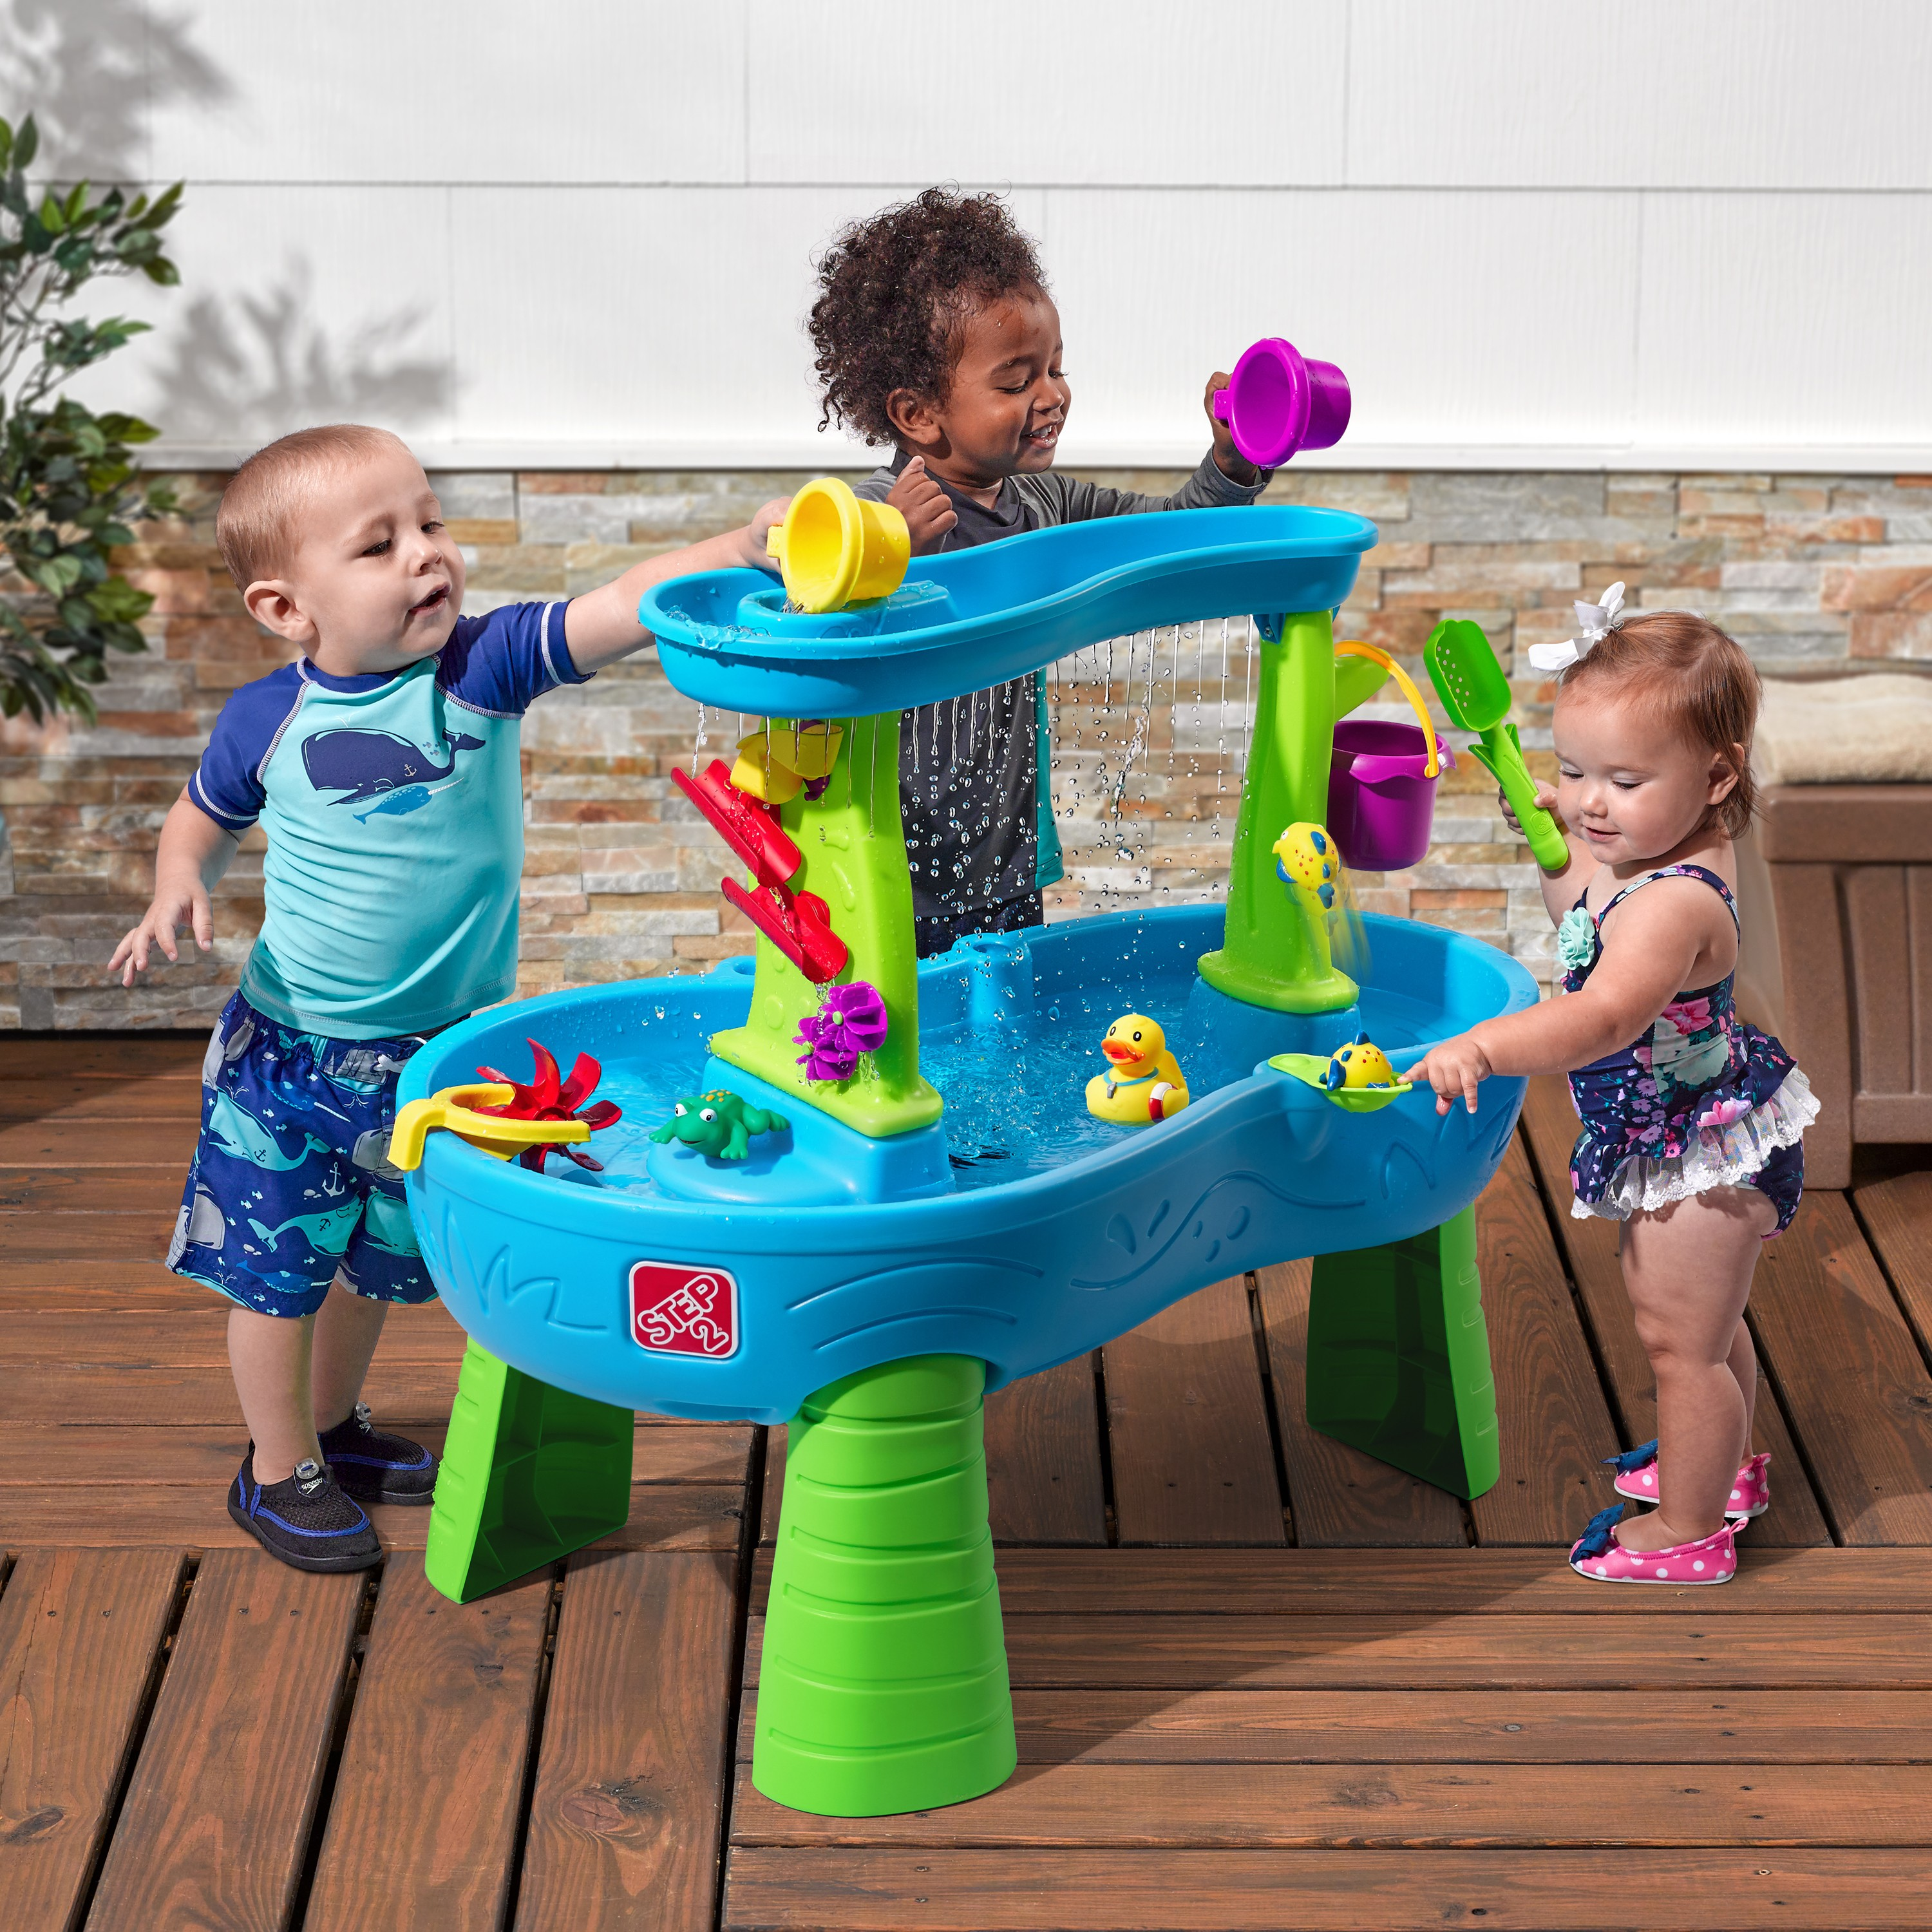 Rain Shower Splash Pond Water Table Pragma BV